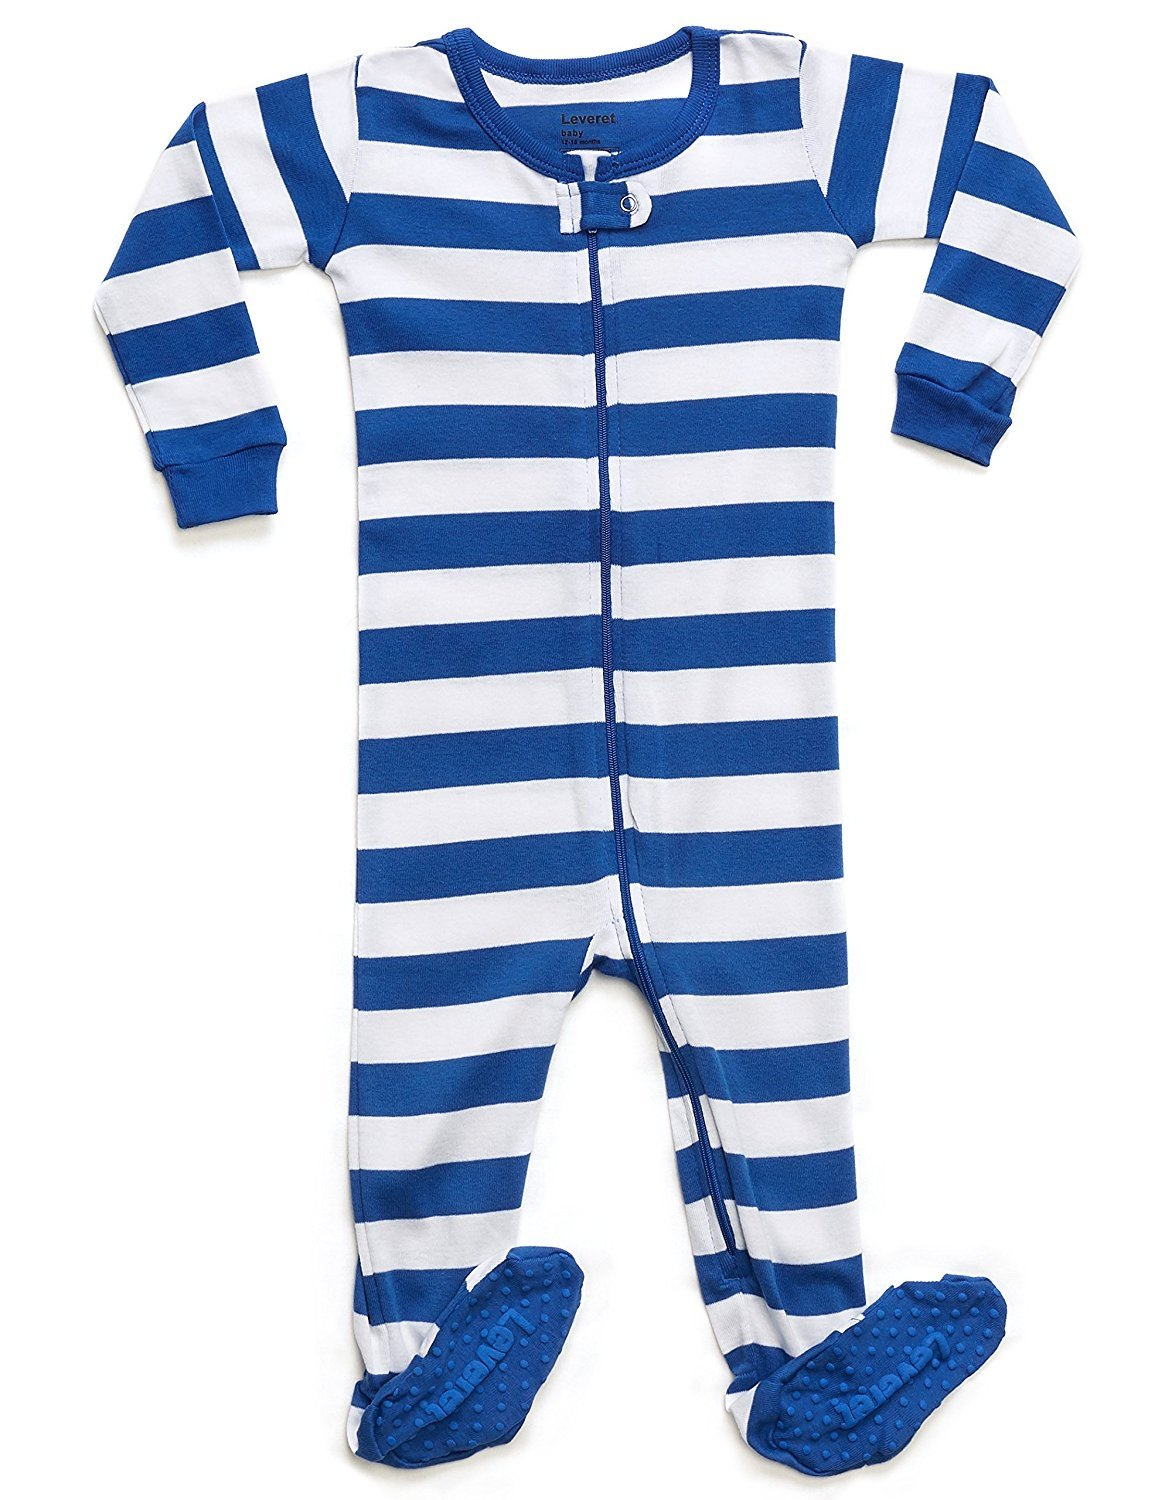 Leveret Striped Footed Pajama Sleeper 100% Cotton (2 Years Blue & White)